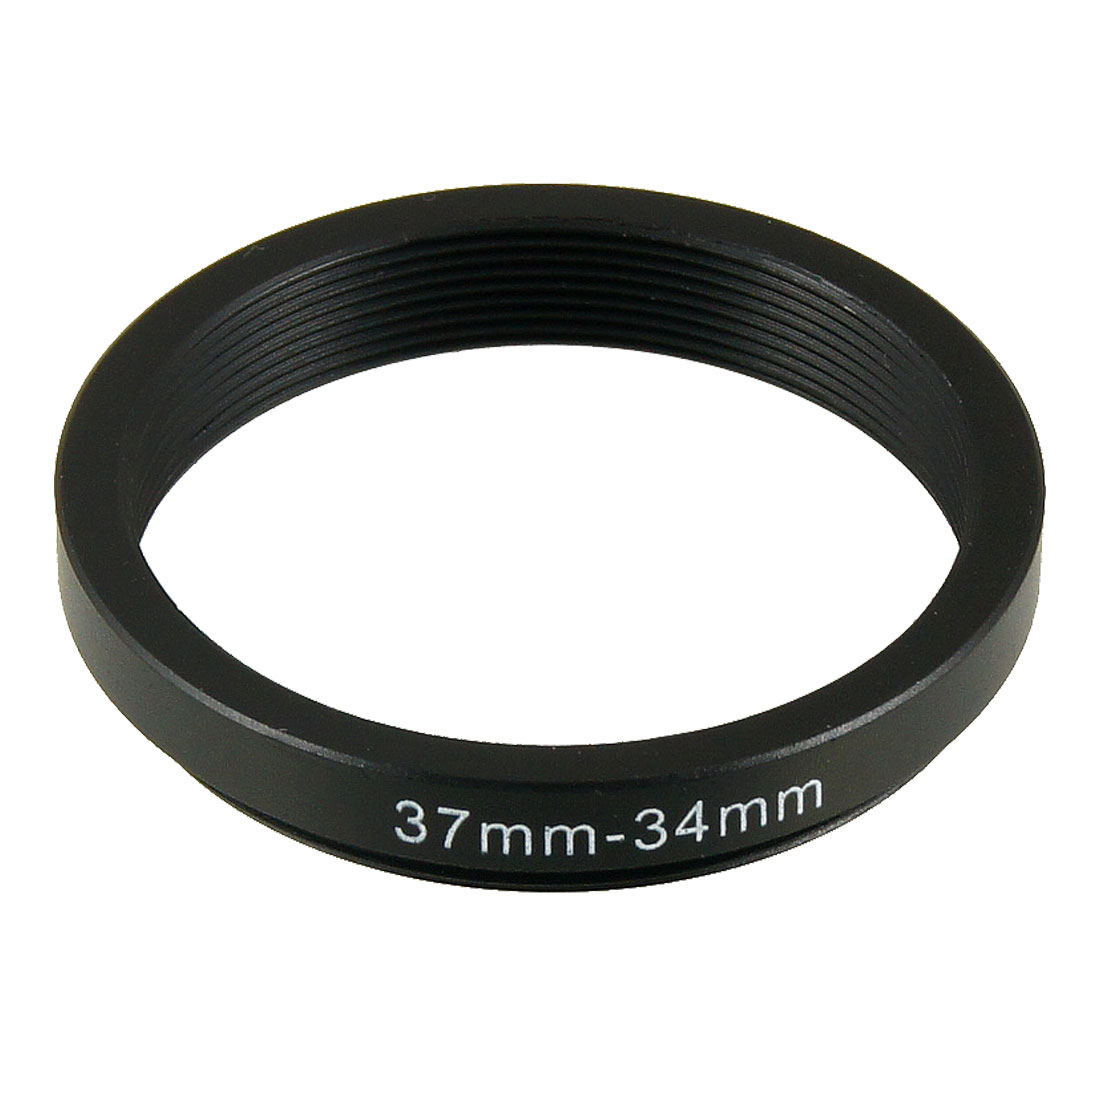 37mm-34mm 37mm to 34mm Black Ring Adaptor for Camera